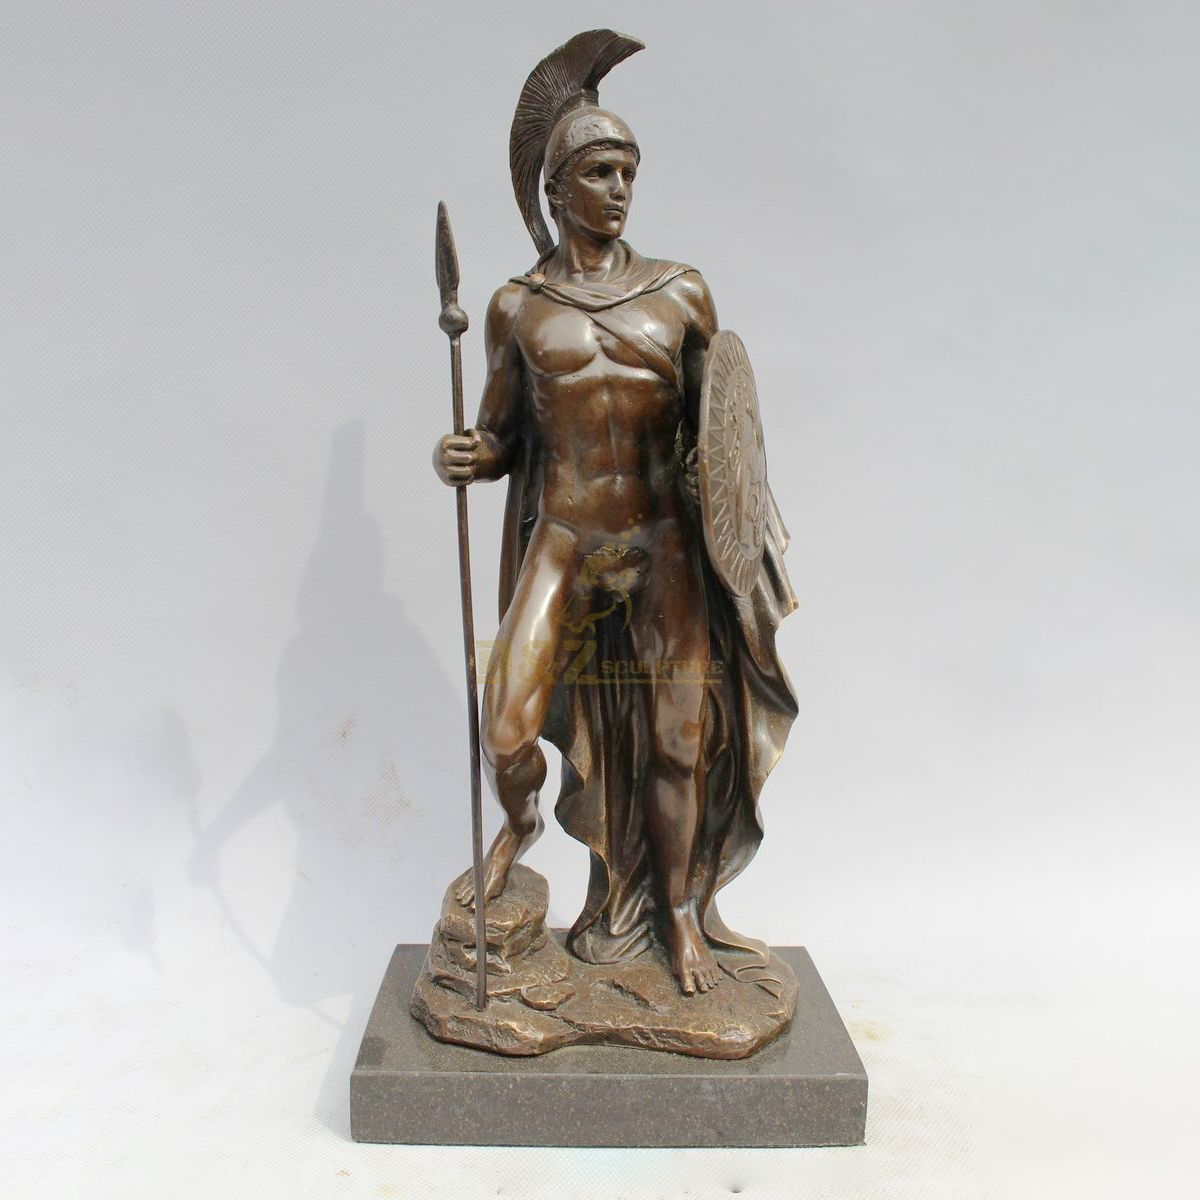 outdoor decor life size metal art casting sparta Warrior antique bronze roman soldiers statue with spear